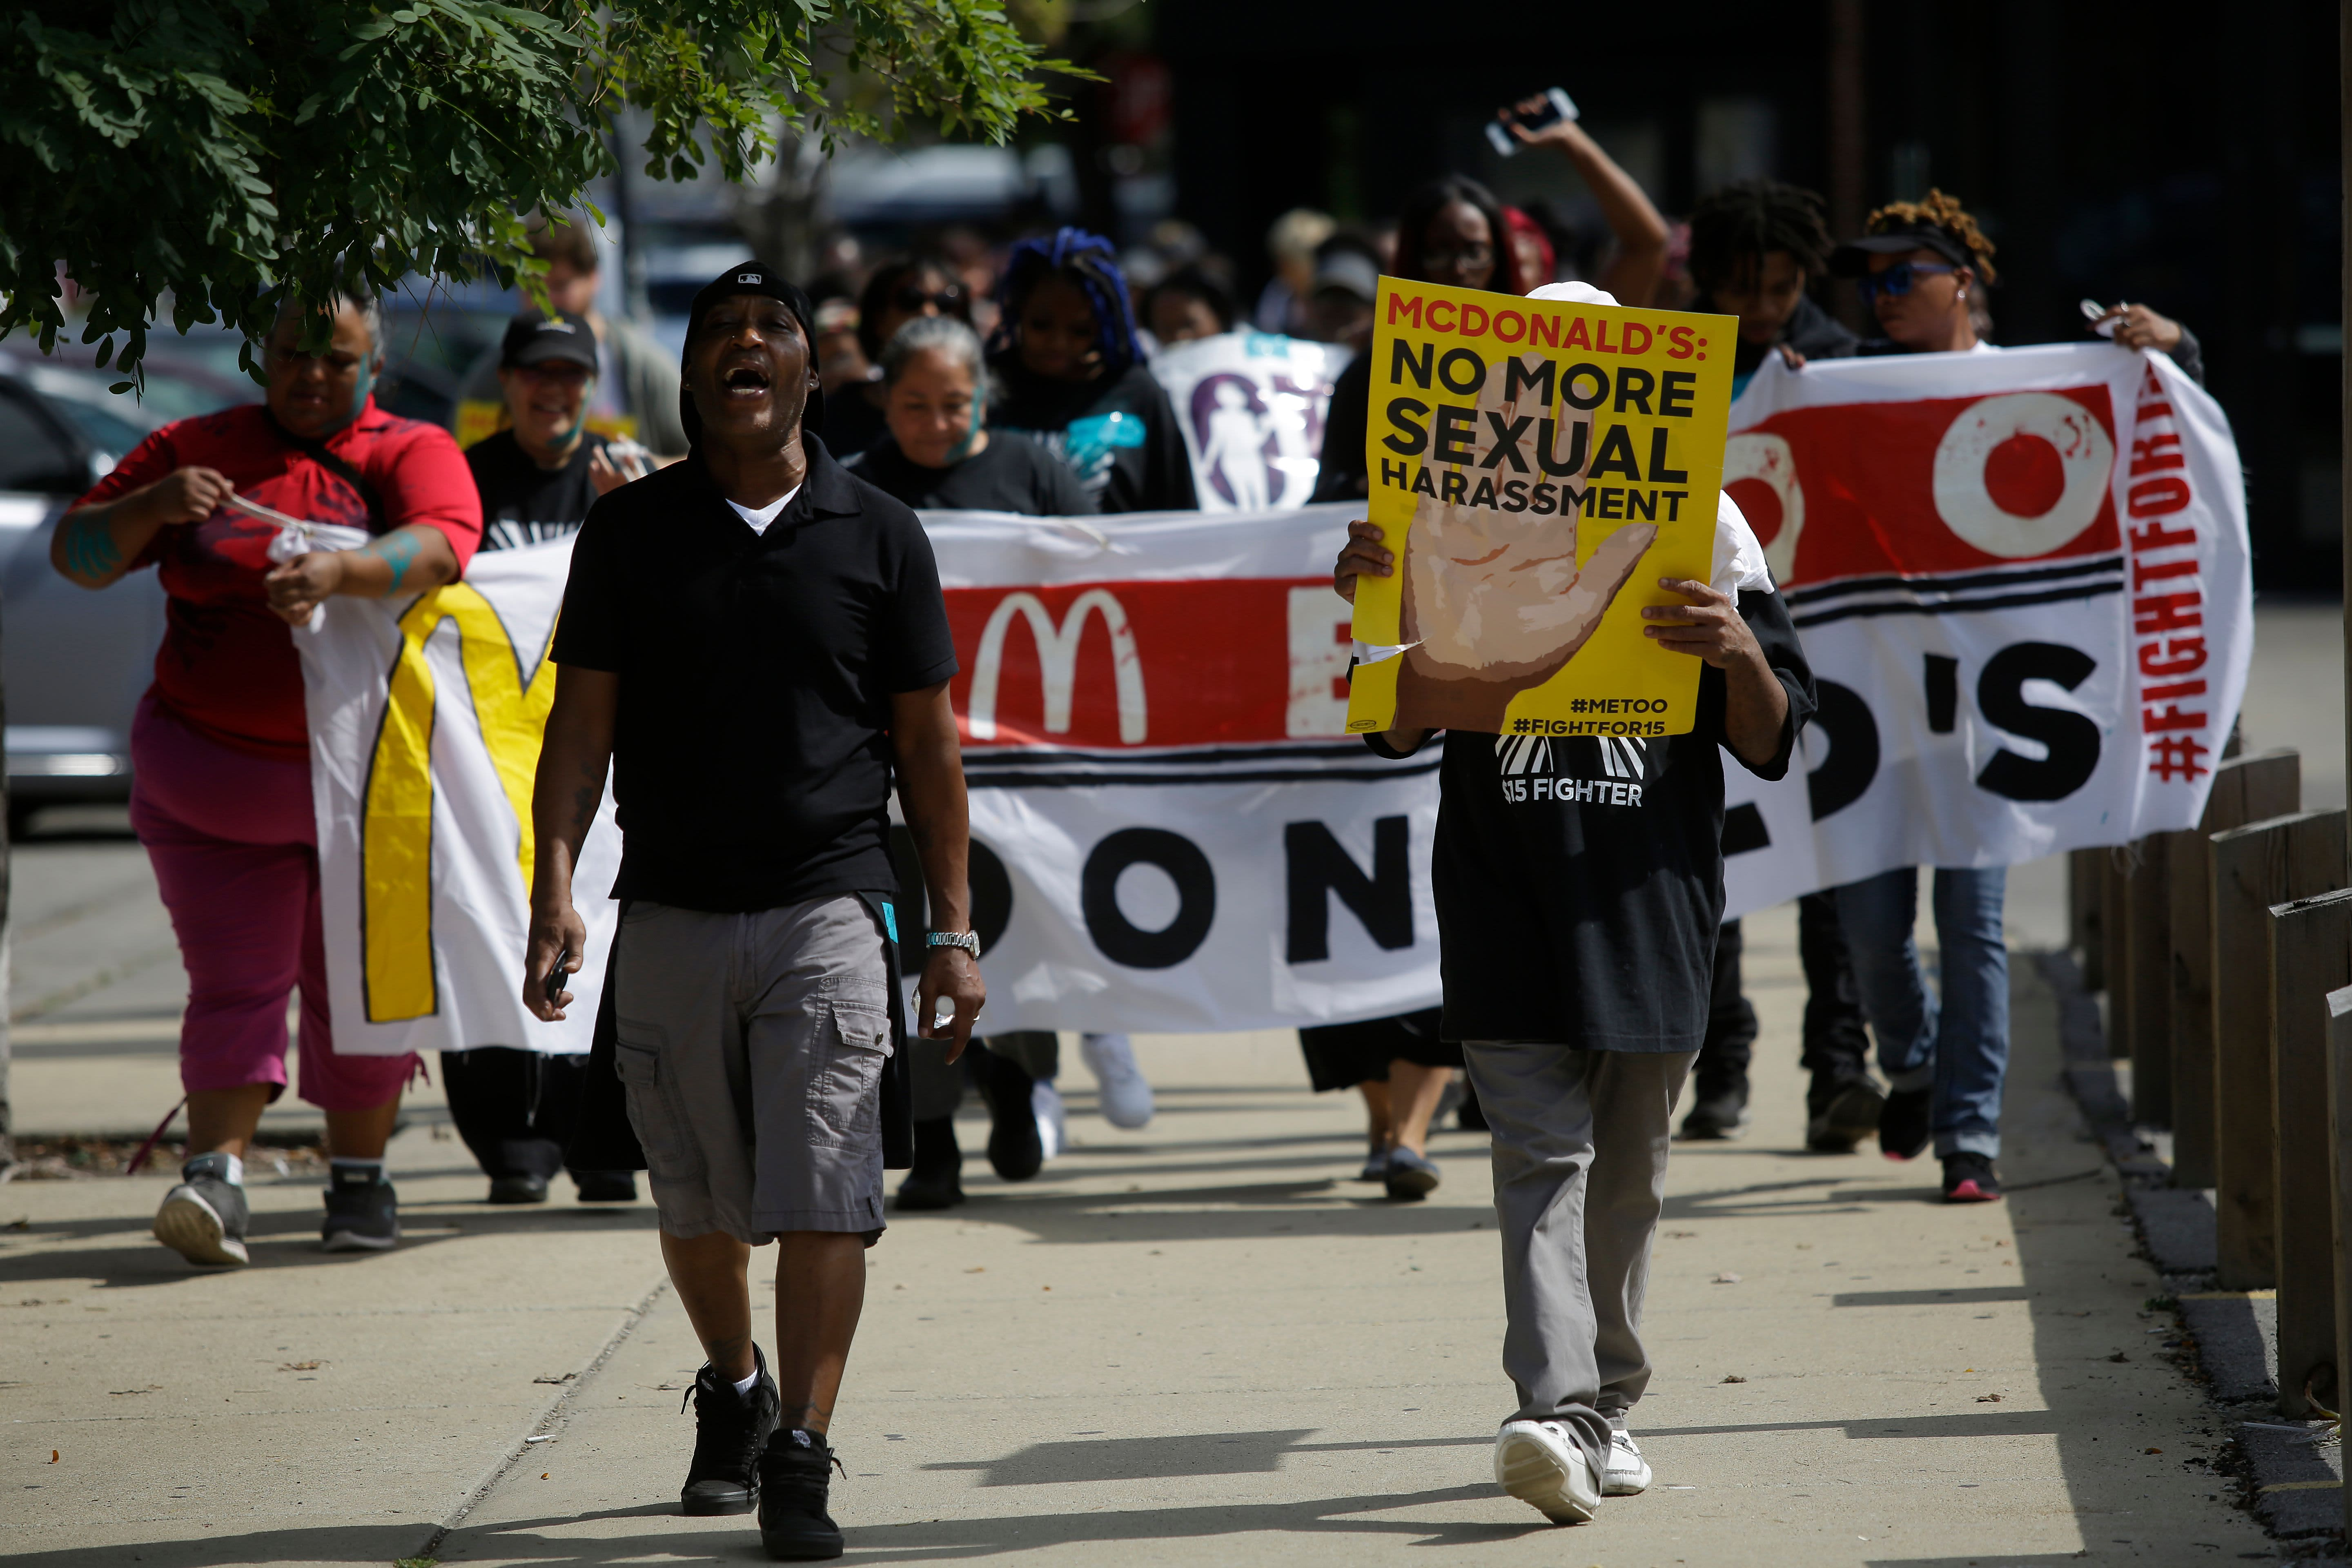 McDonald's faces new complaints related to handling of sexual